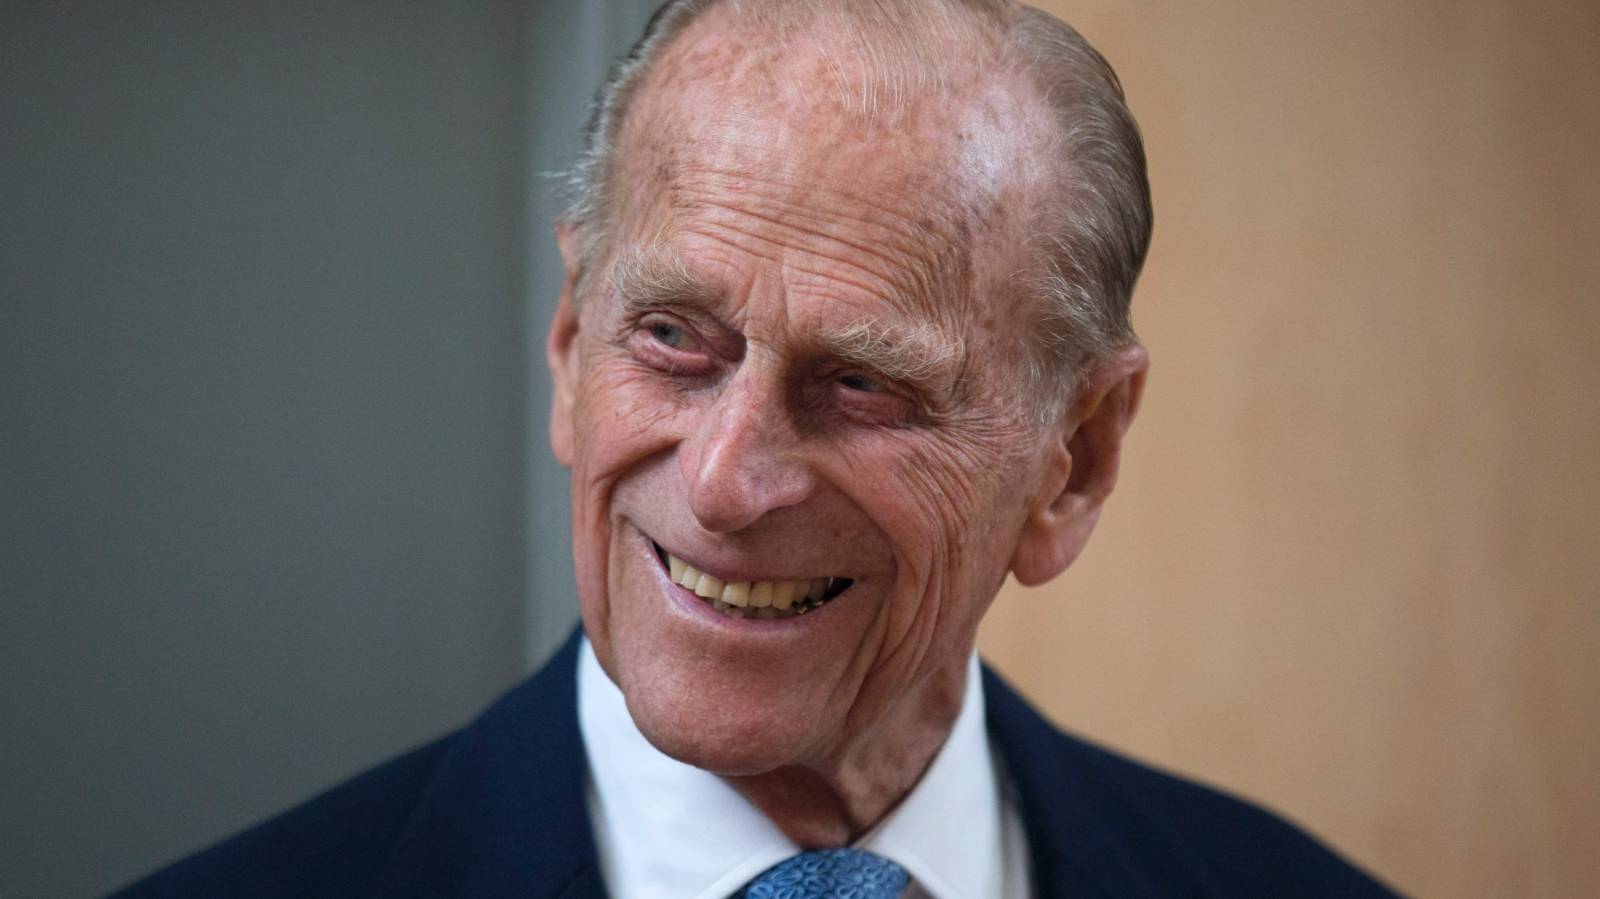 Prince Philip death: Why are we still obsessed with the royal family?